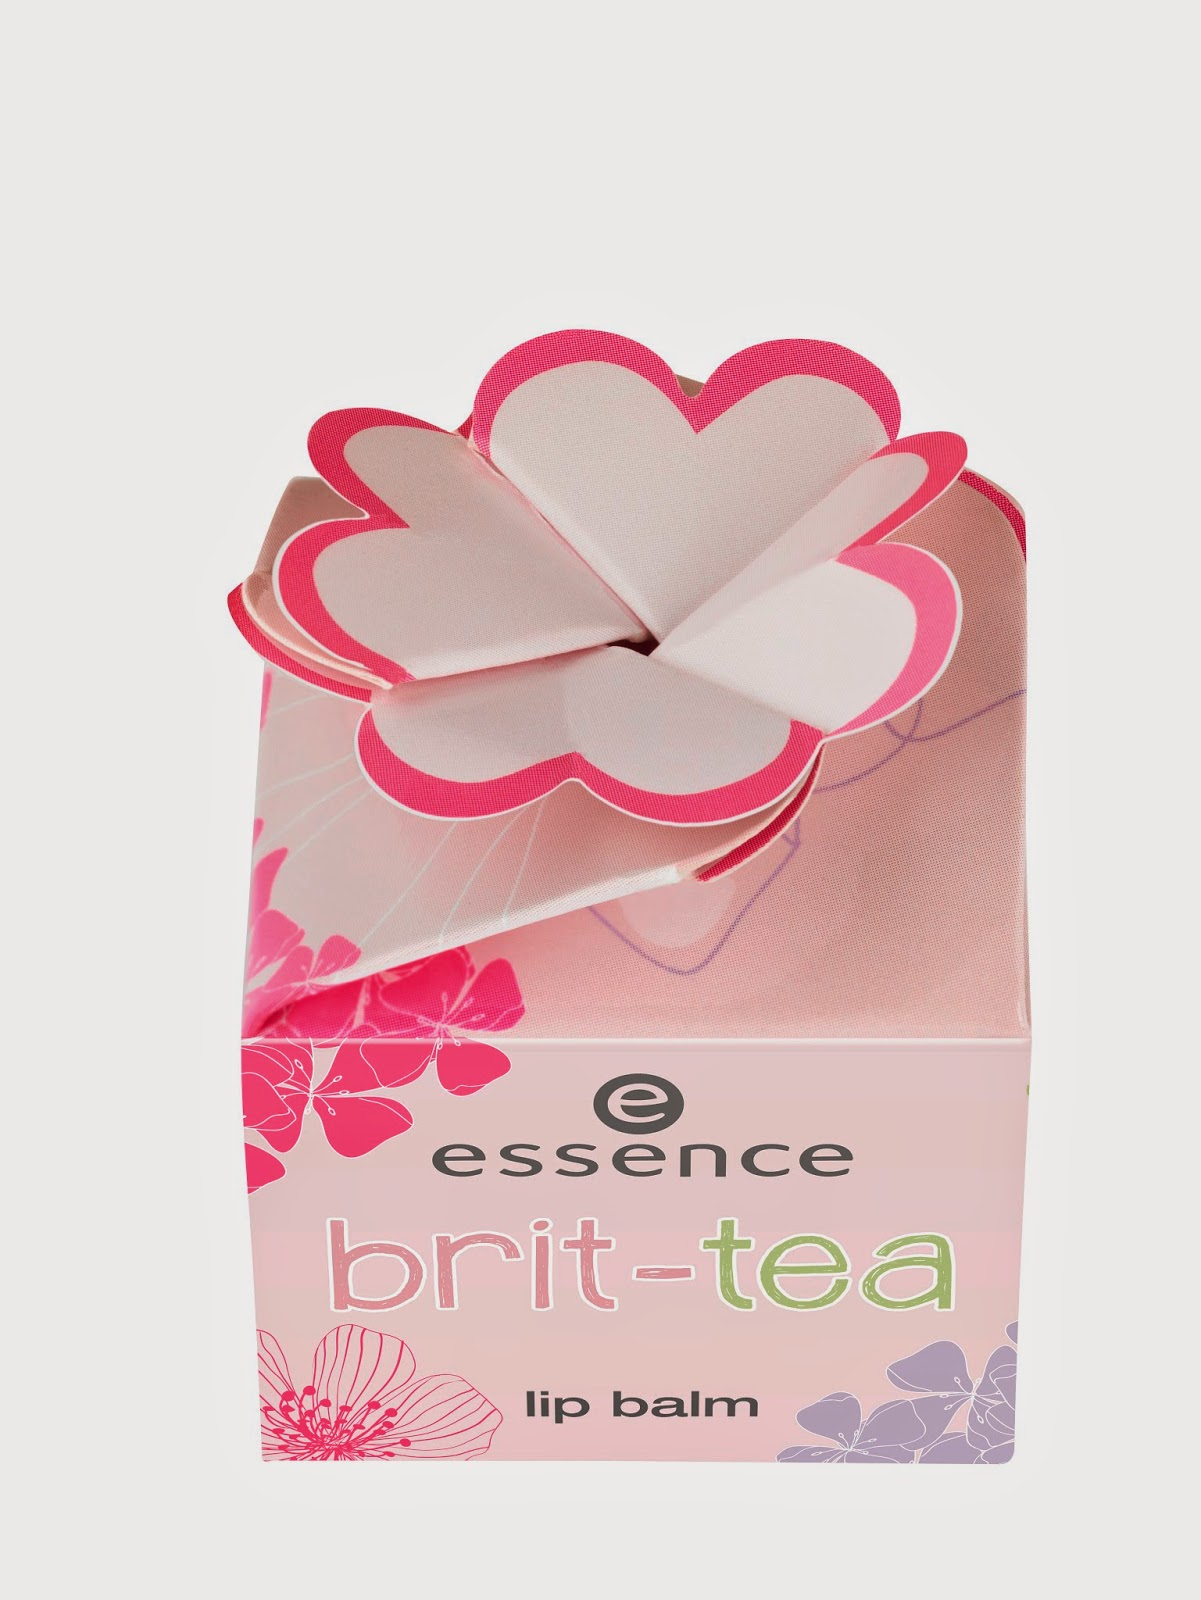 essence-brit-tea-limited-edition-preview-lip-balm